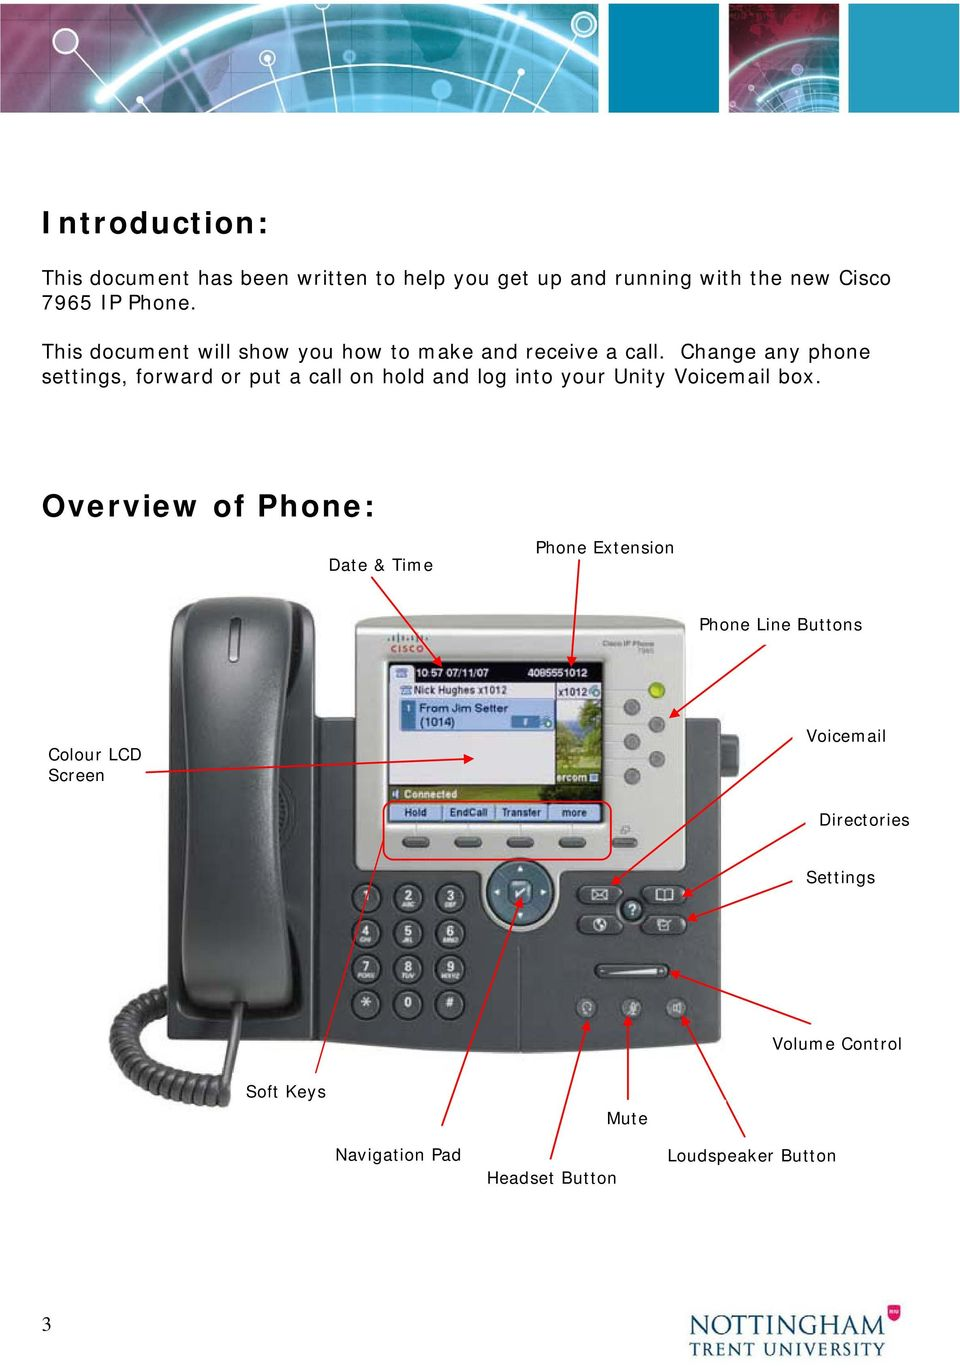 Information Systems Cisco 7965 IP Phone Quick Reference